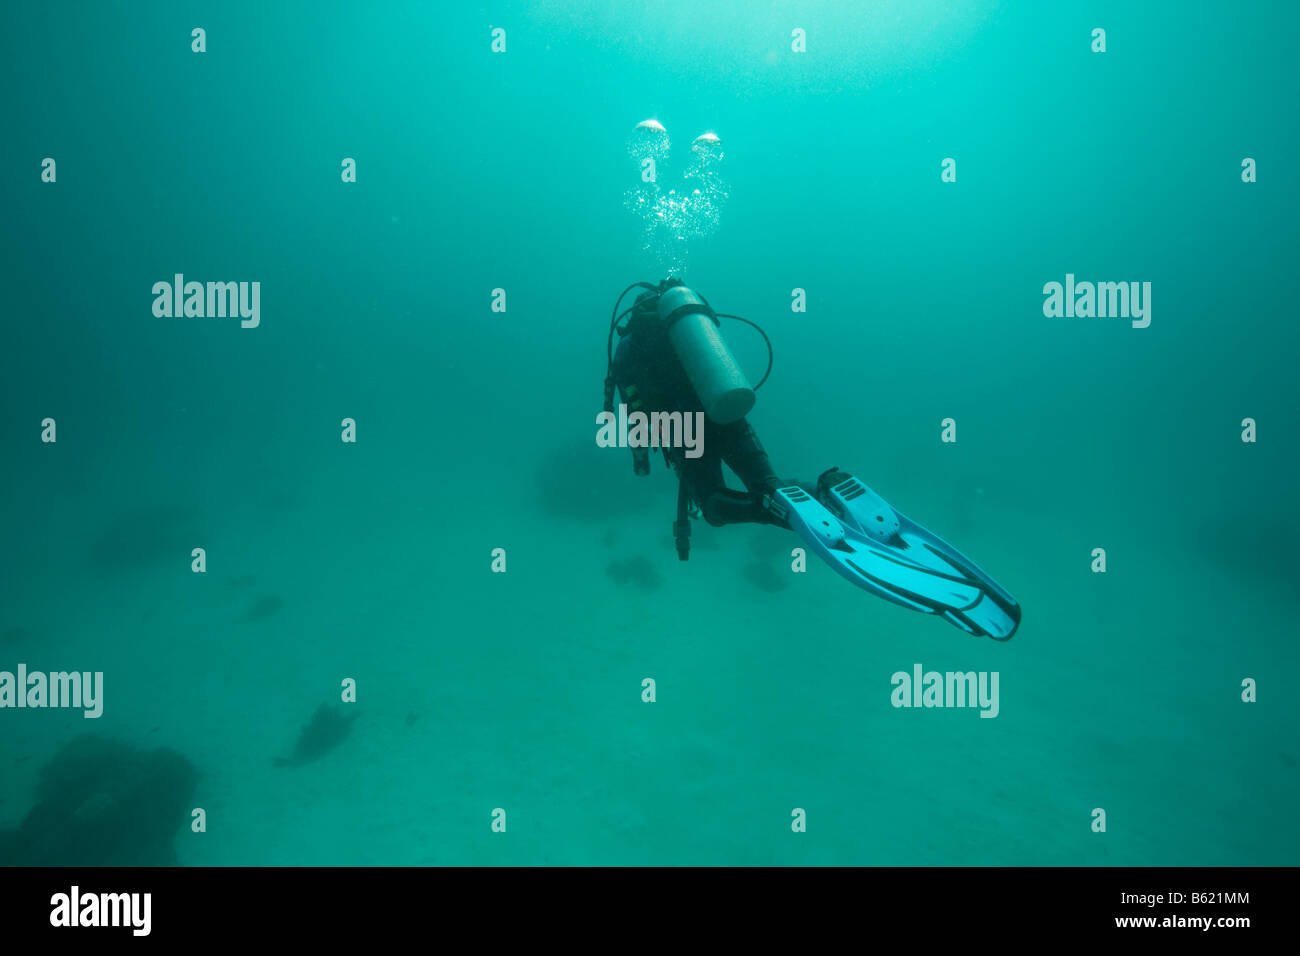 Scuba diver swimming in cloudy water, Philippines, Southeast Asia - Stock Image